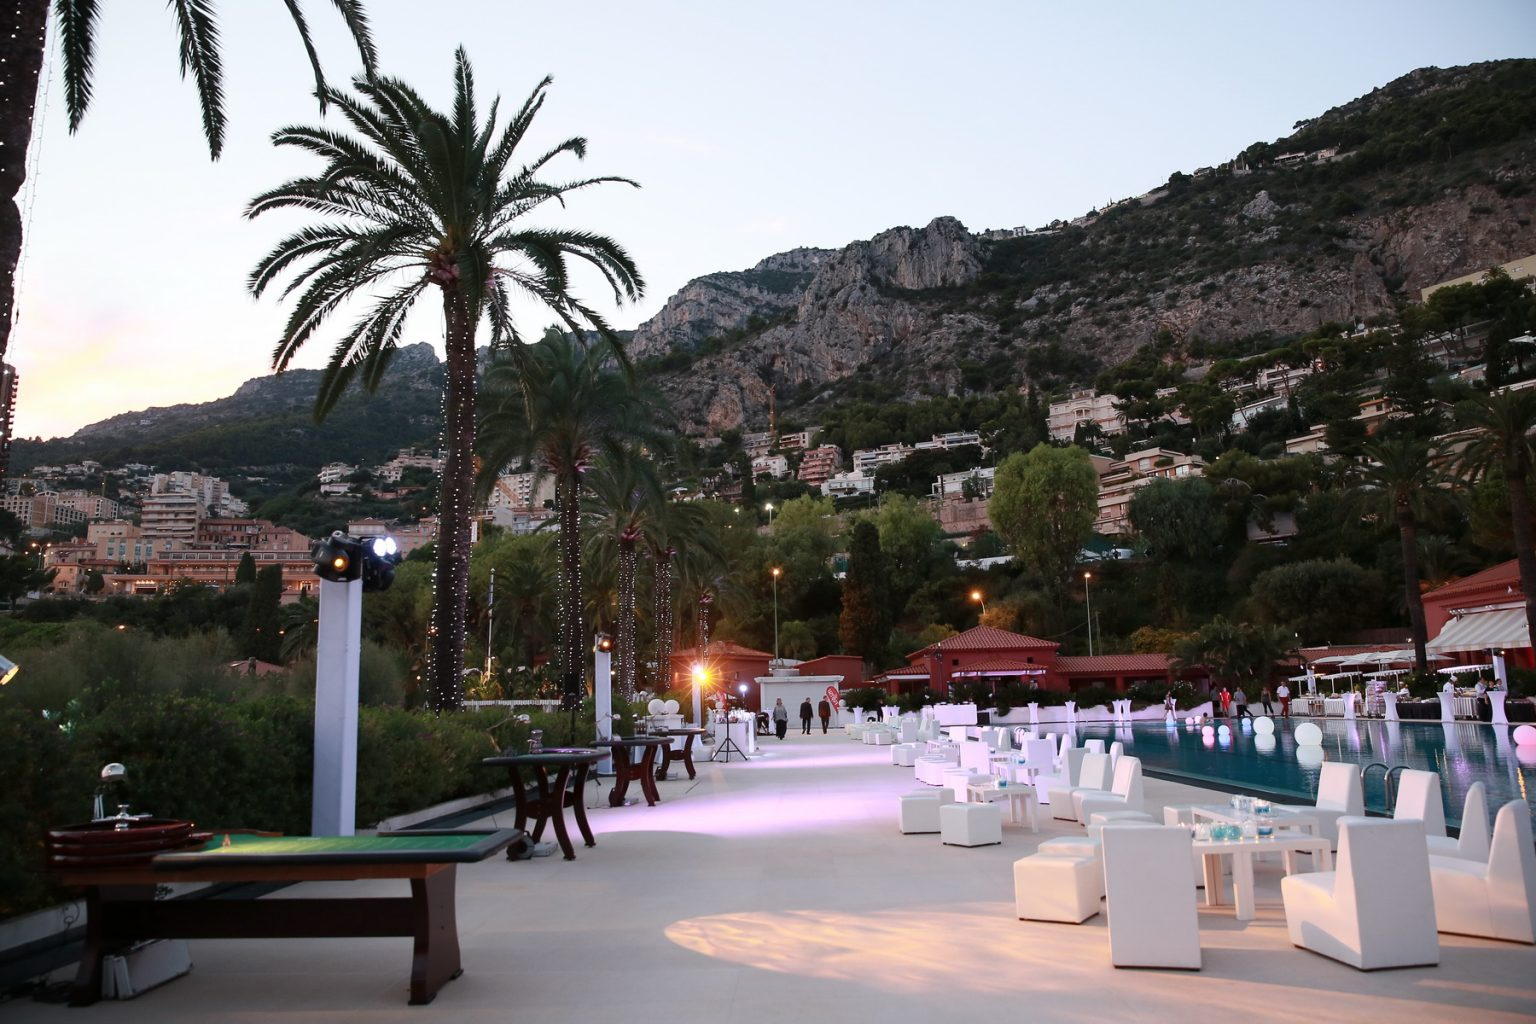 Le Deck Monte Carlo Pool Evening 7 - Le Deck Monte Carlo Pool Evening